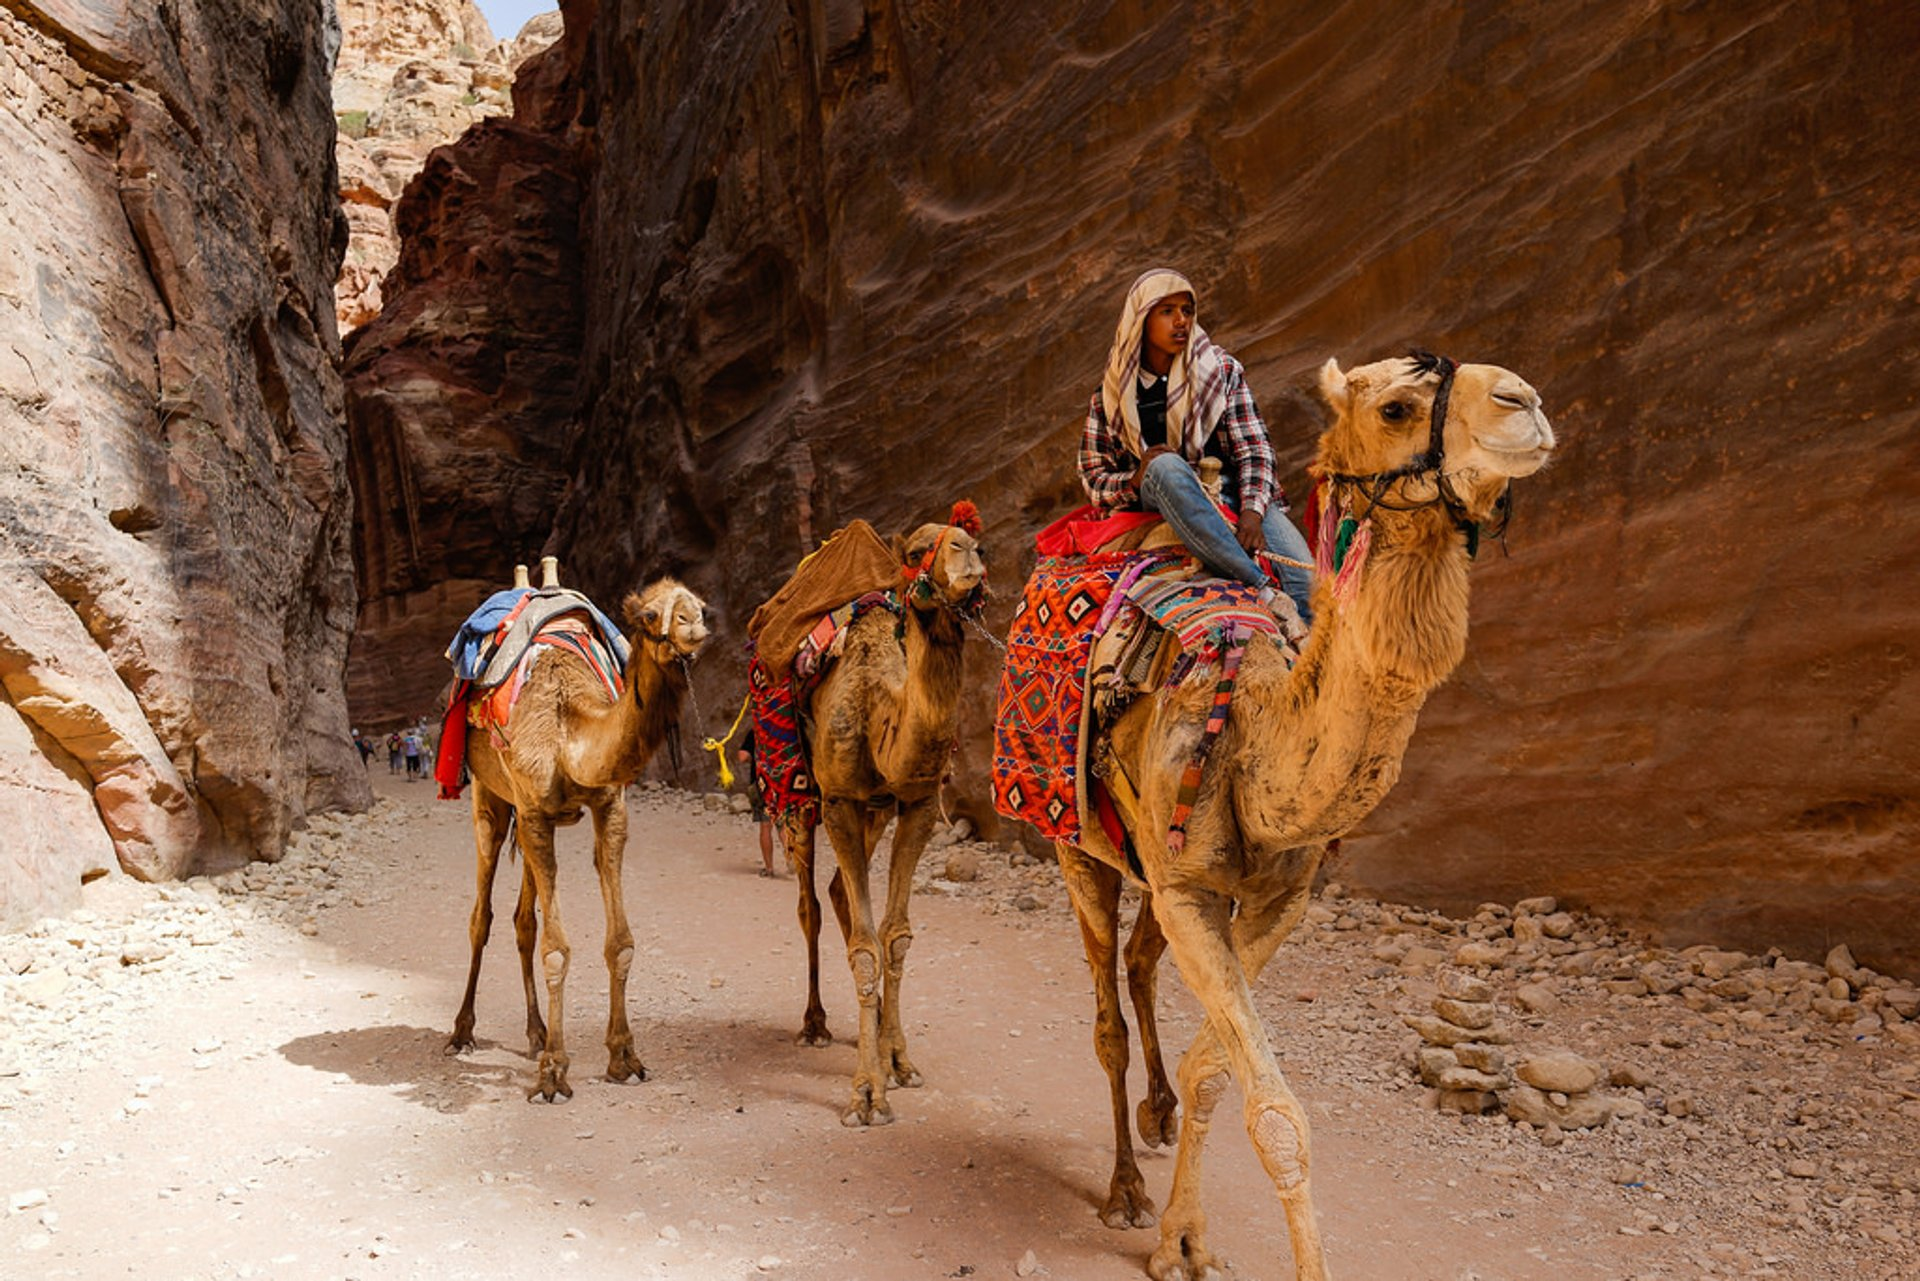 Camel Safari in Jordan 2020 - Best Time